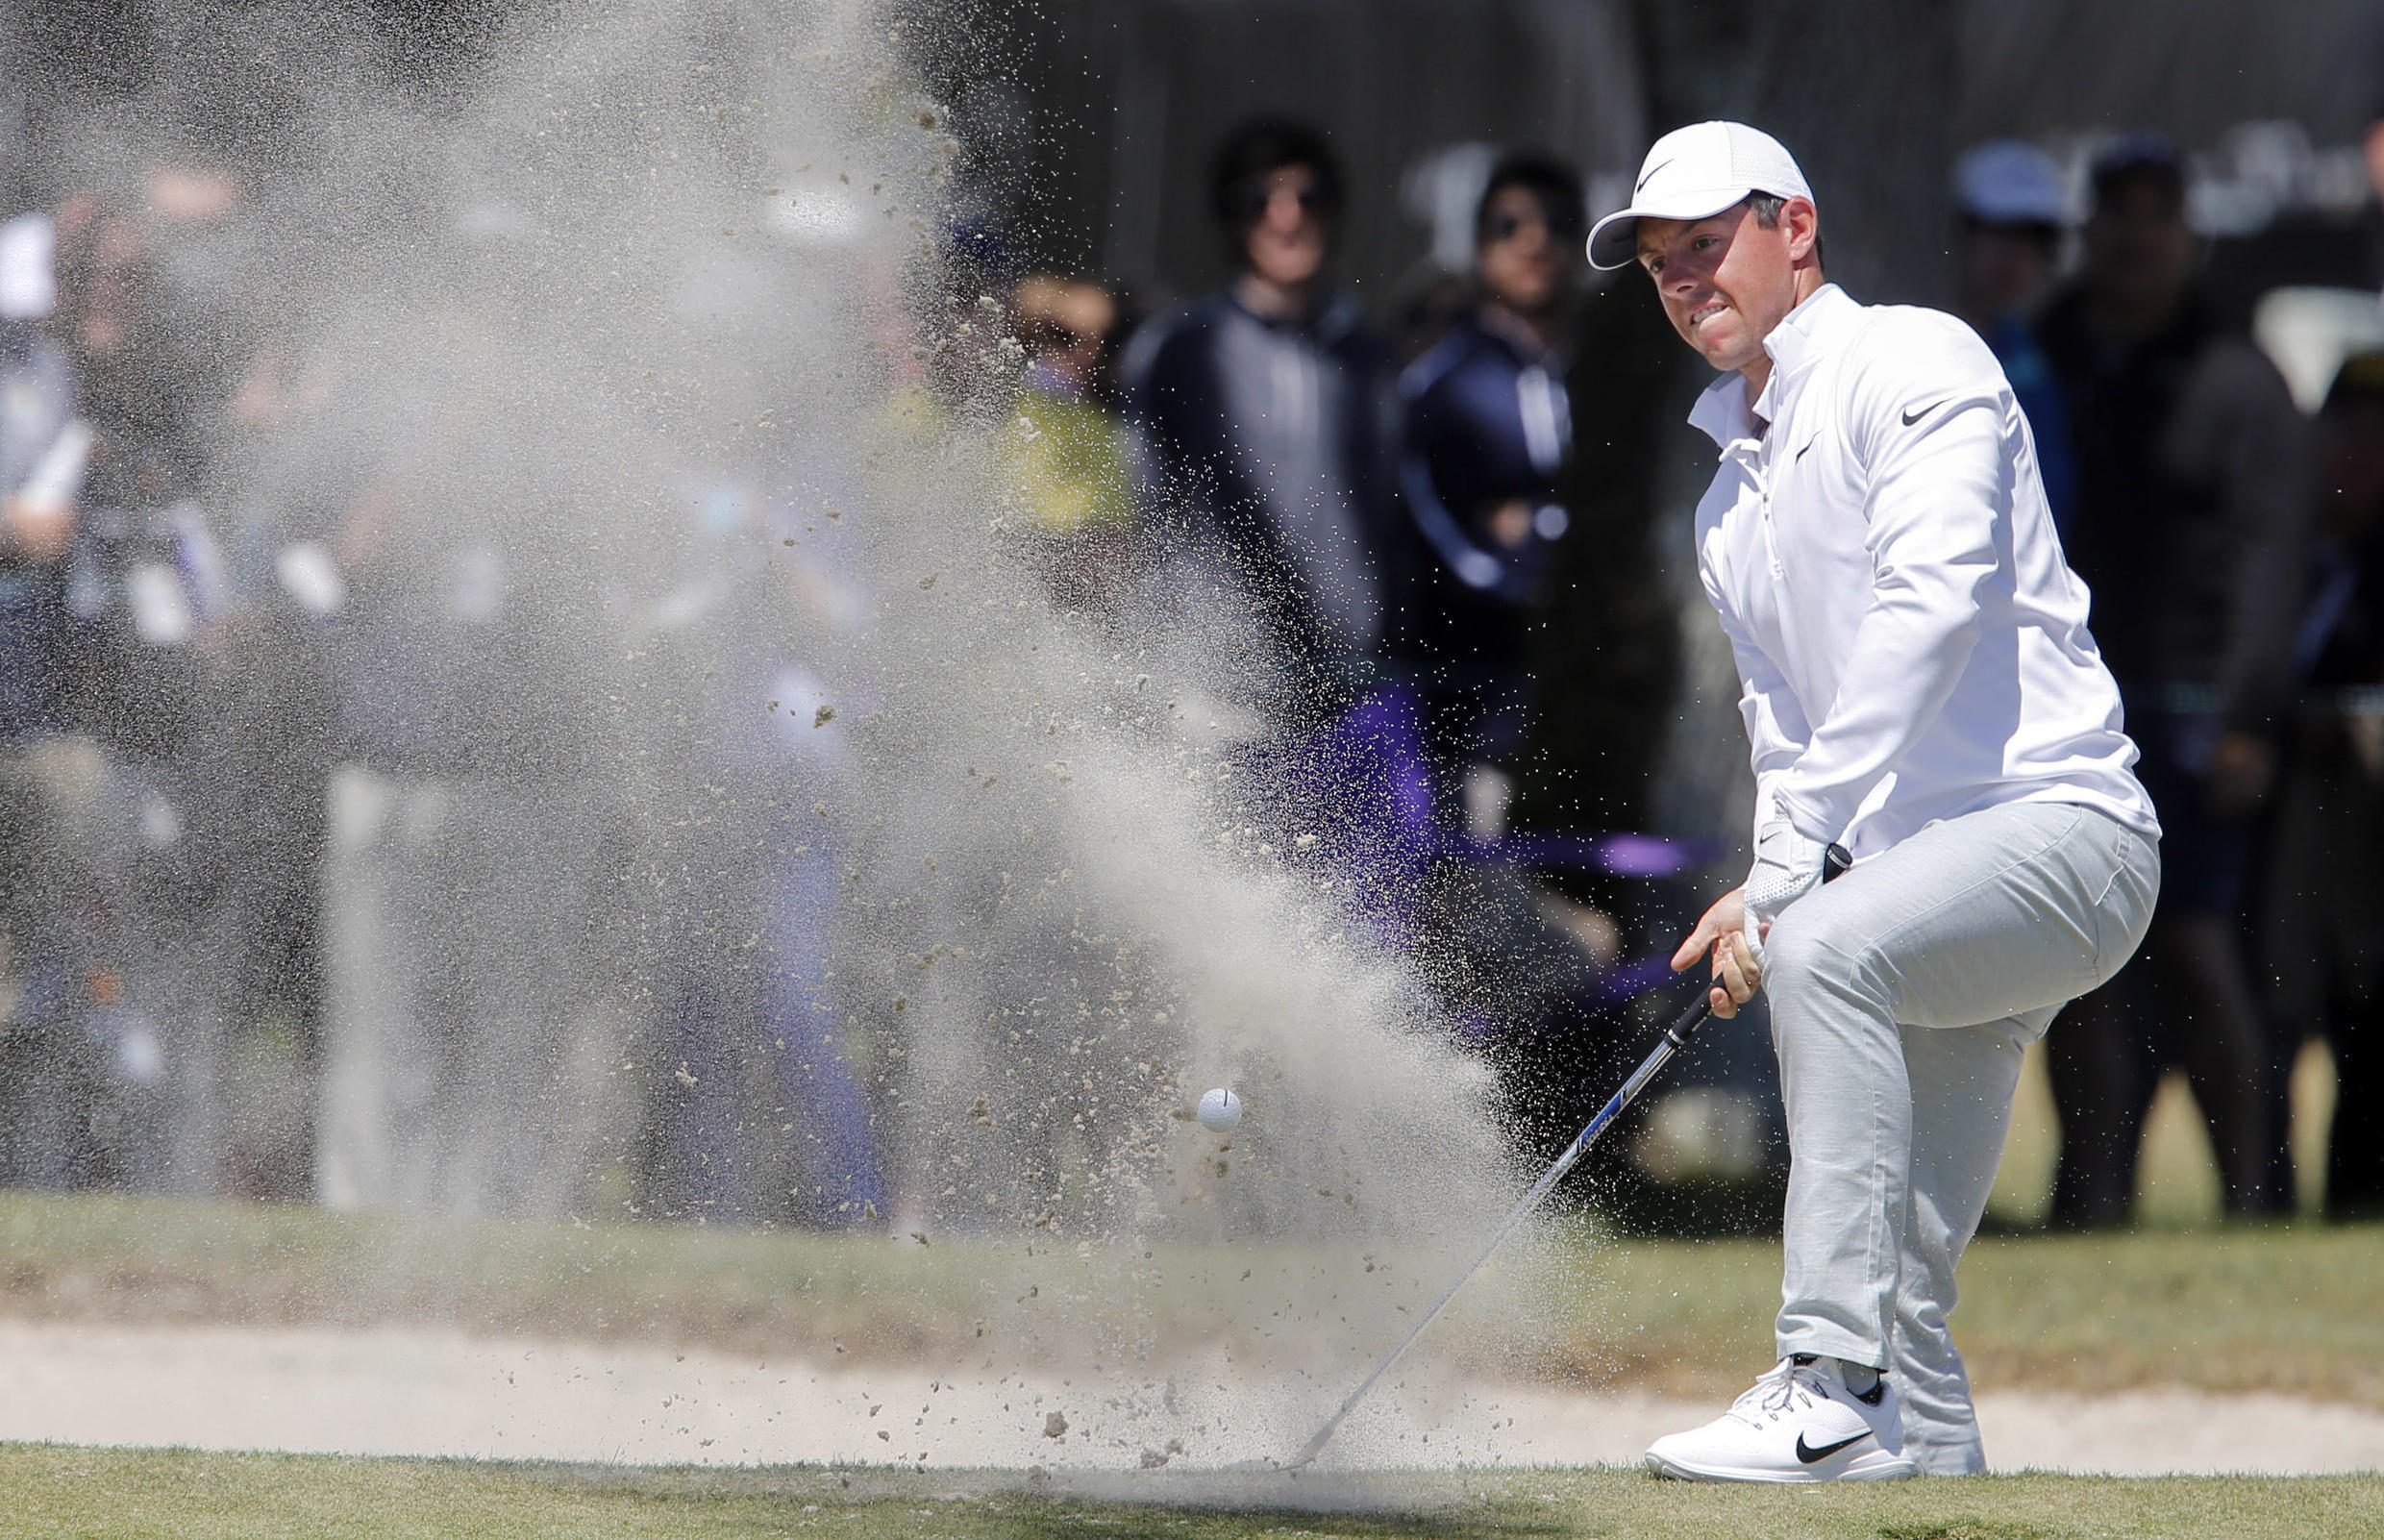 Rory McIlroy frees himself from a bunker on the ninth hole during the second round of the Arnold Palmer Invitational